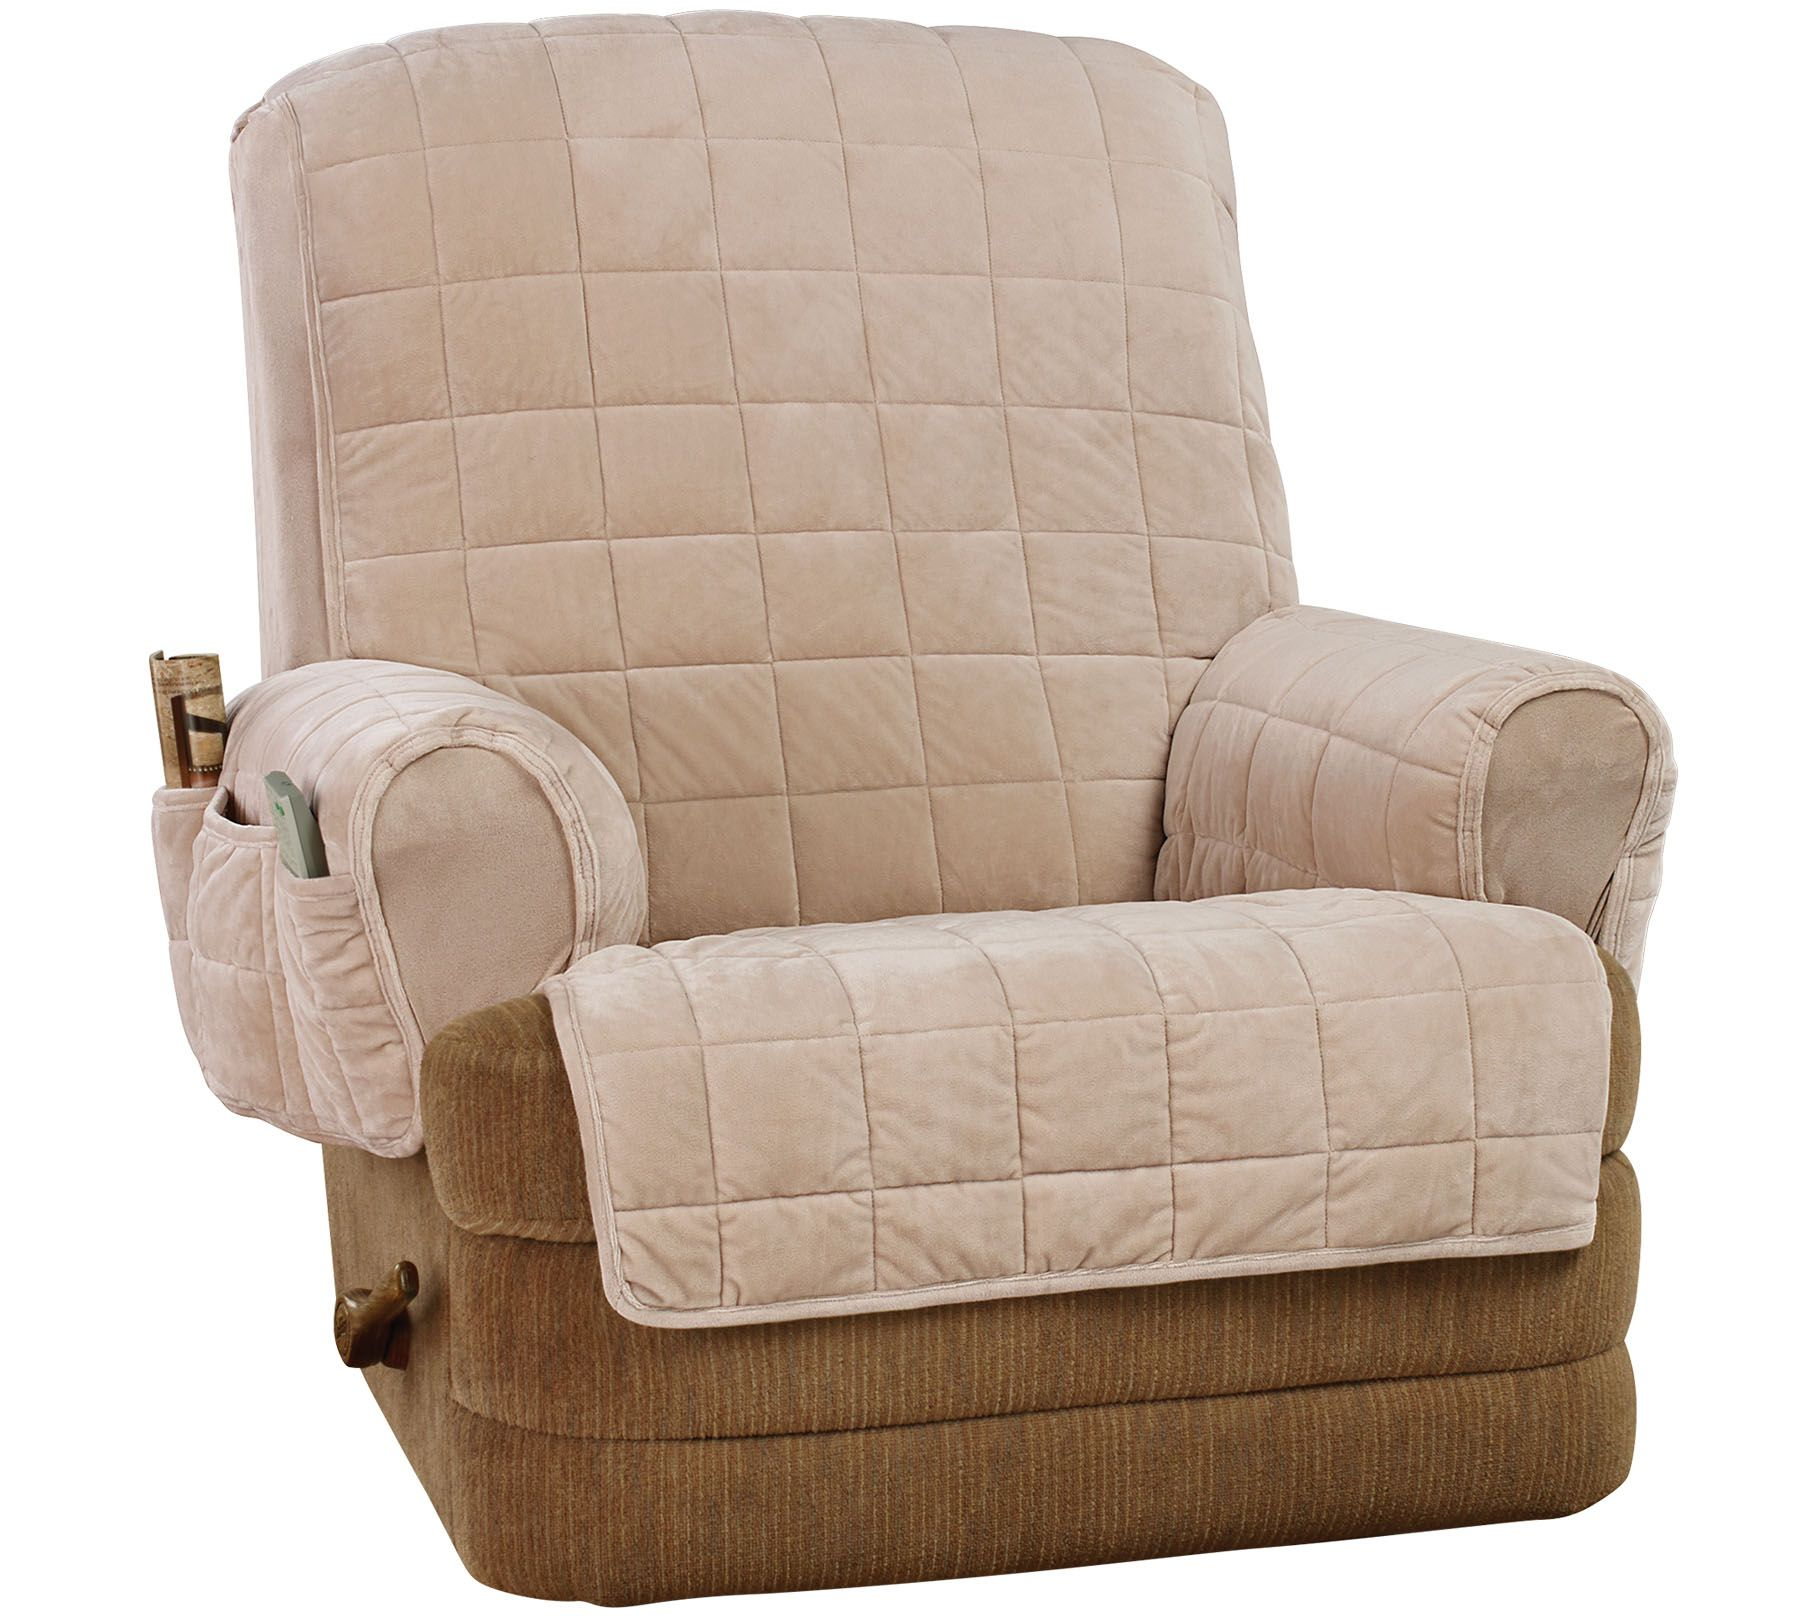 Small Recliner Slipcover Amp Full Size Of Furniturefabulous